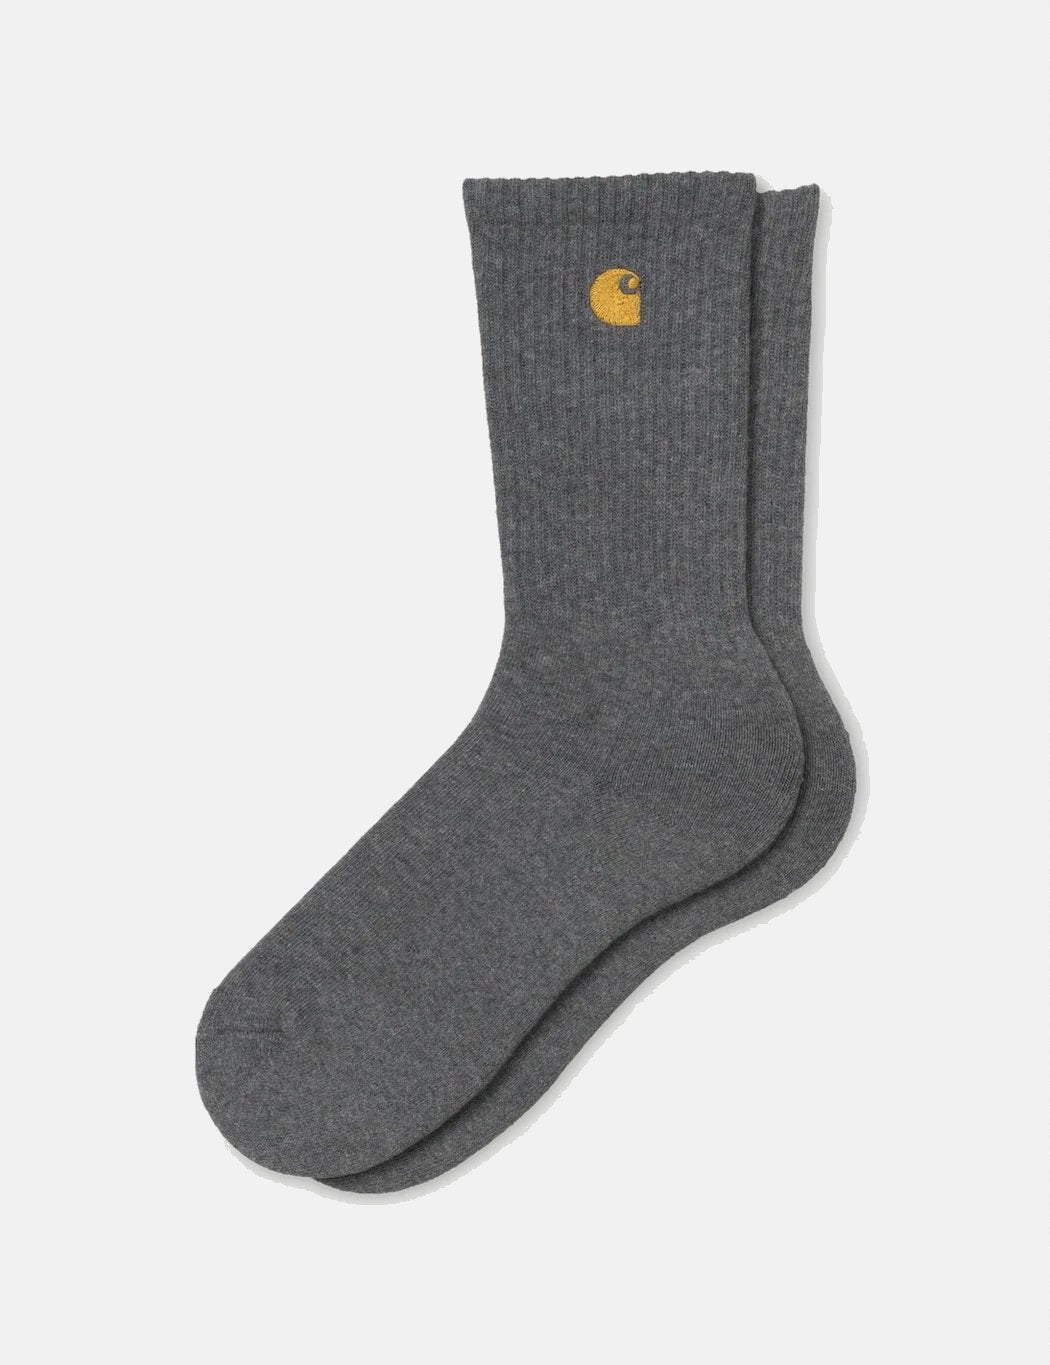 Carhartt-WIP Chase Socken - Dunkelgrau Heather / Gold